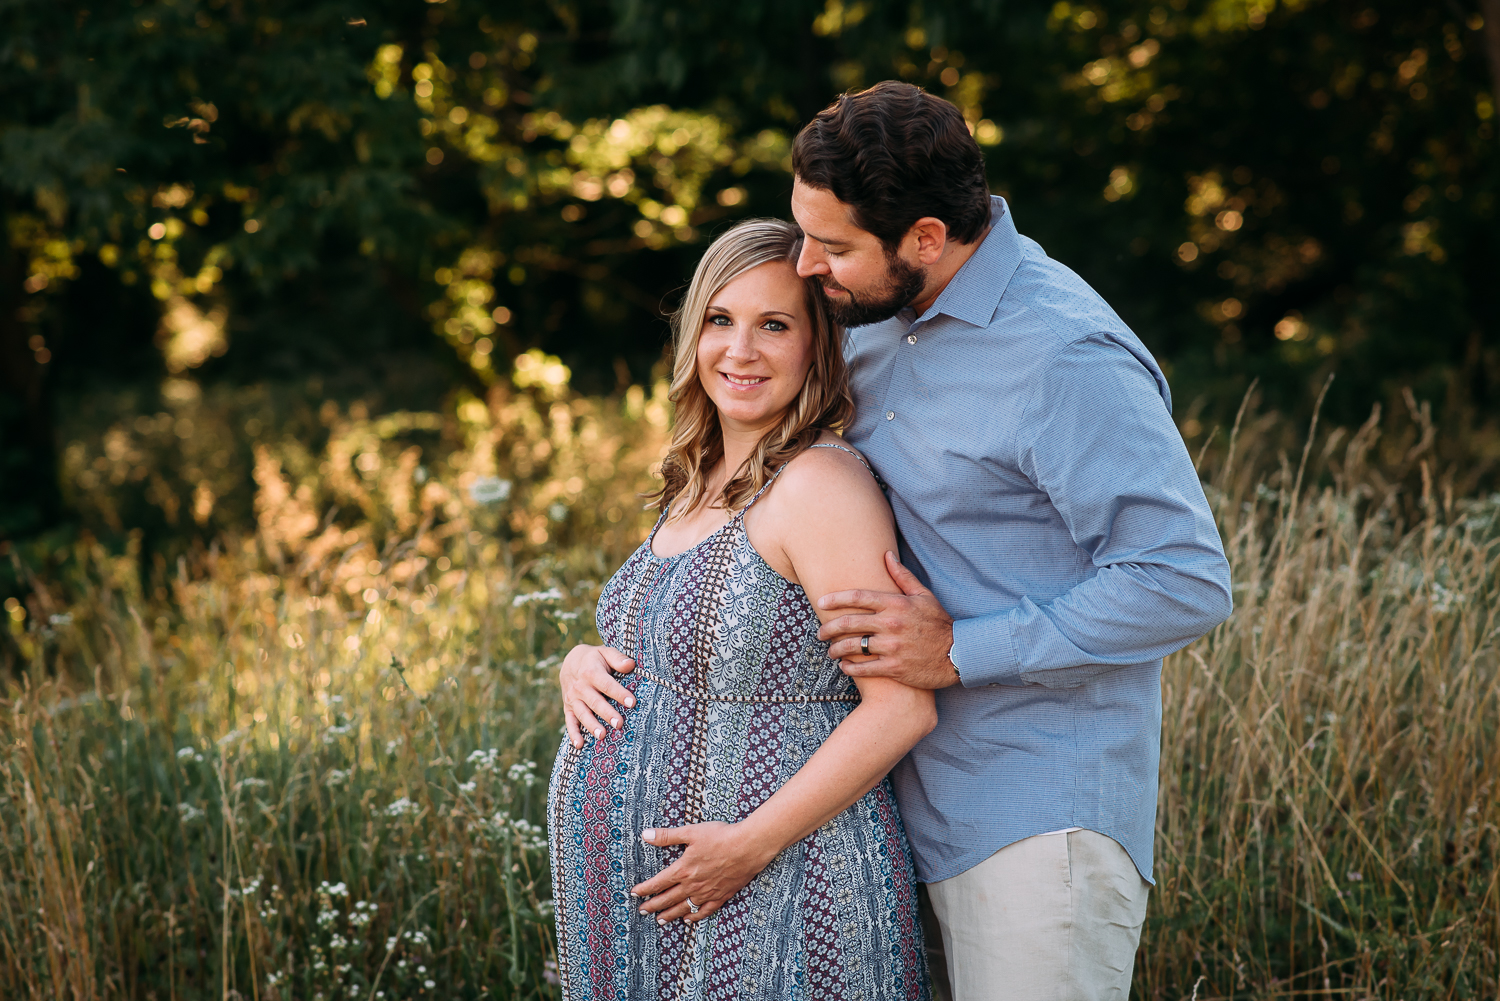 maternity photography pregnant woman with husband tall grasses Baltimore Photographer